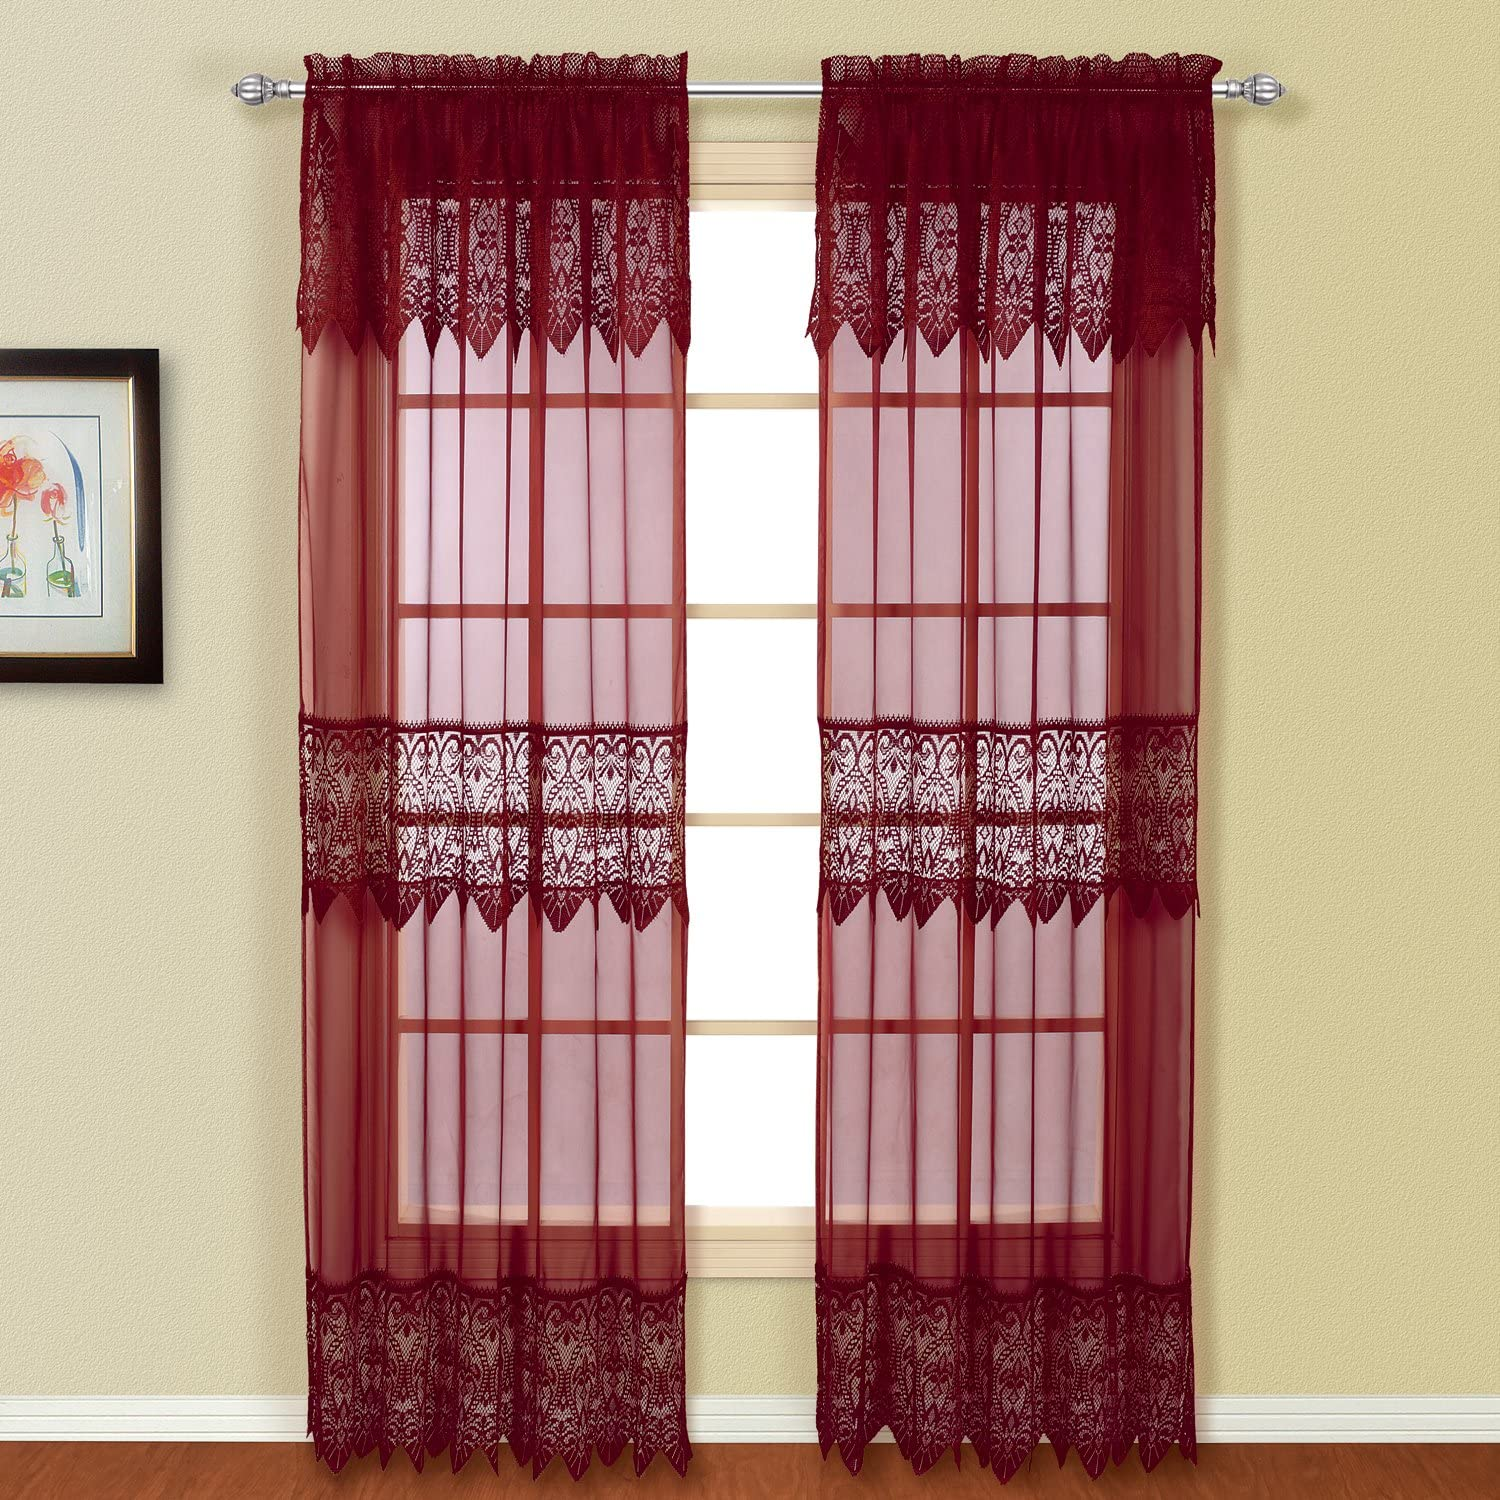 American Curtain and Home Patricia Window Curtain, 52-Inch by 84-Inch, Burgundy